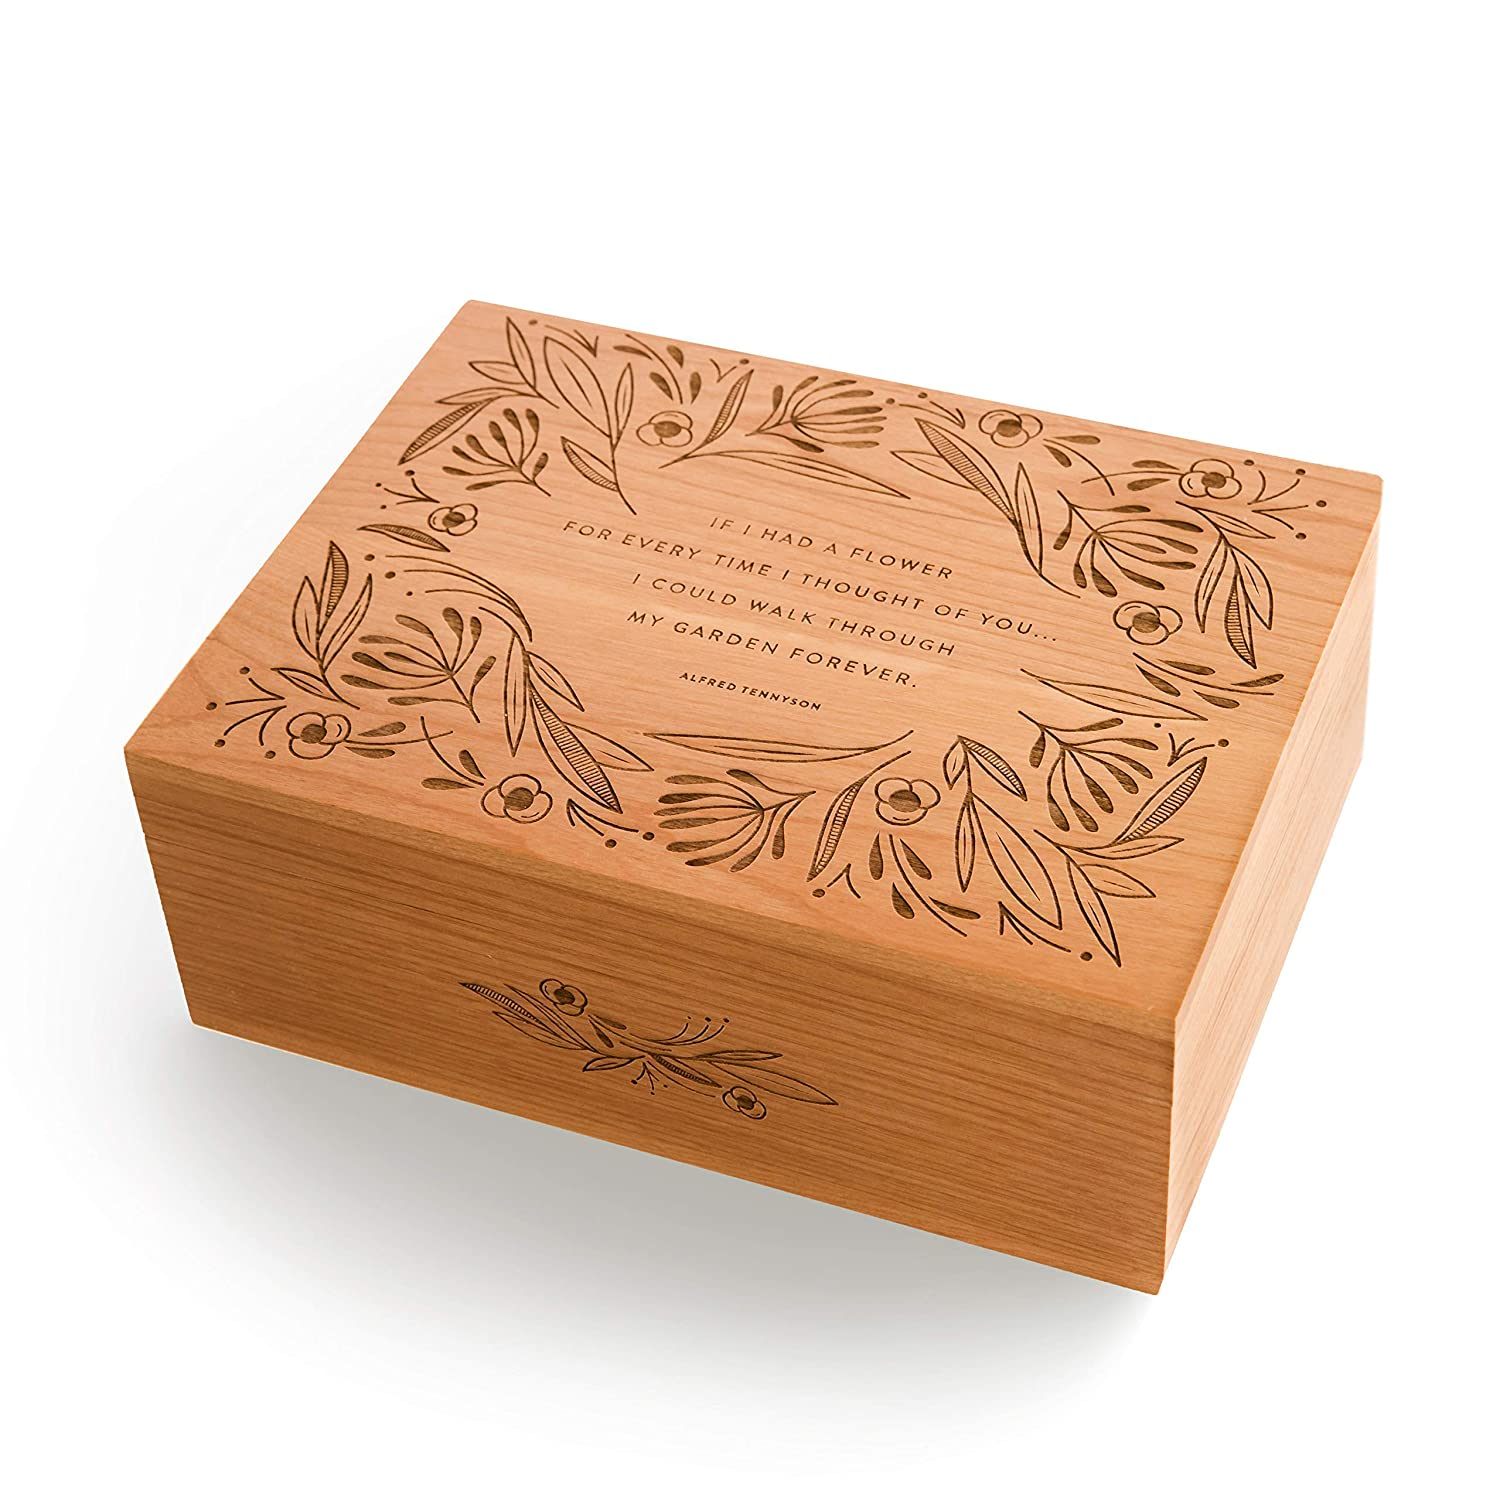 Garden of Flowers Alfred Lord Tennyson Quote Wood Keepsake Box [Personalized Custom Gifts, Anniversary, Wedding, Baby, Memory, Father's Day]